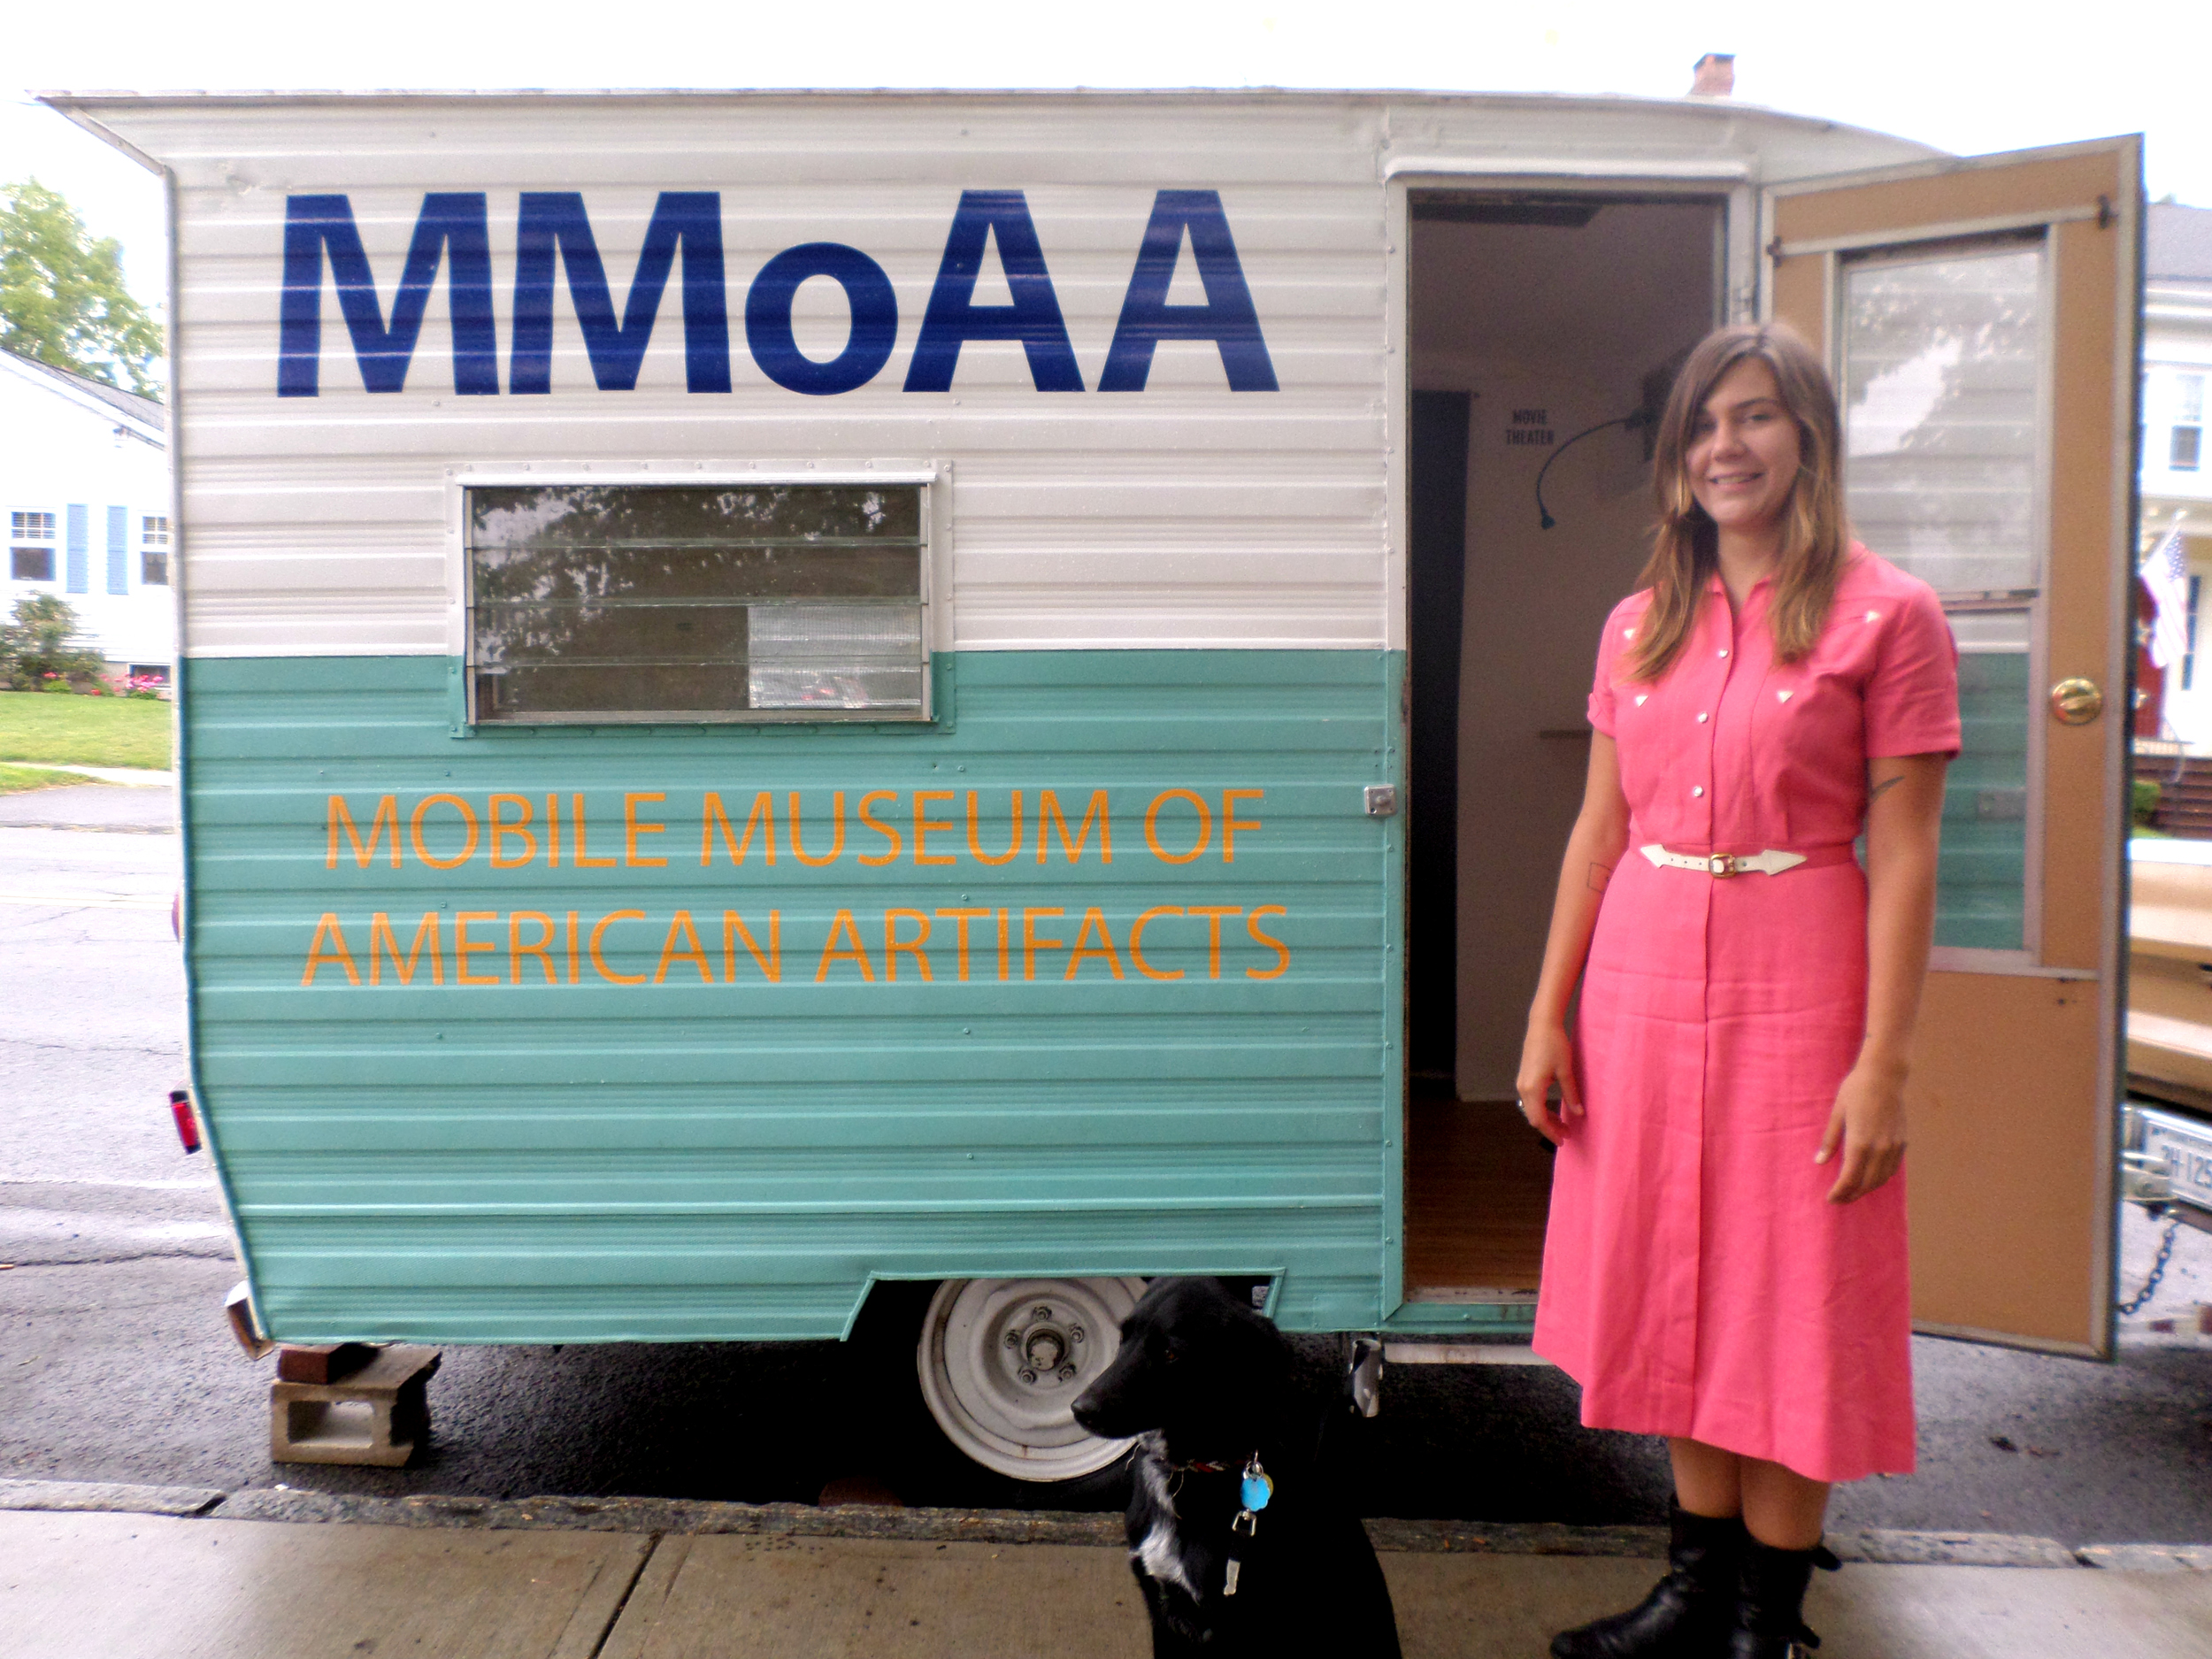 Laurelin, Kochia, and MMoAA at the Wallingford Public Library on September 15, 2014.